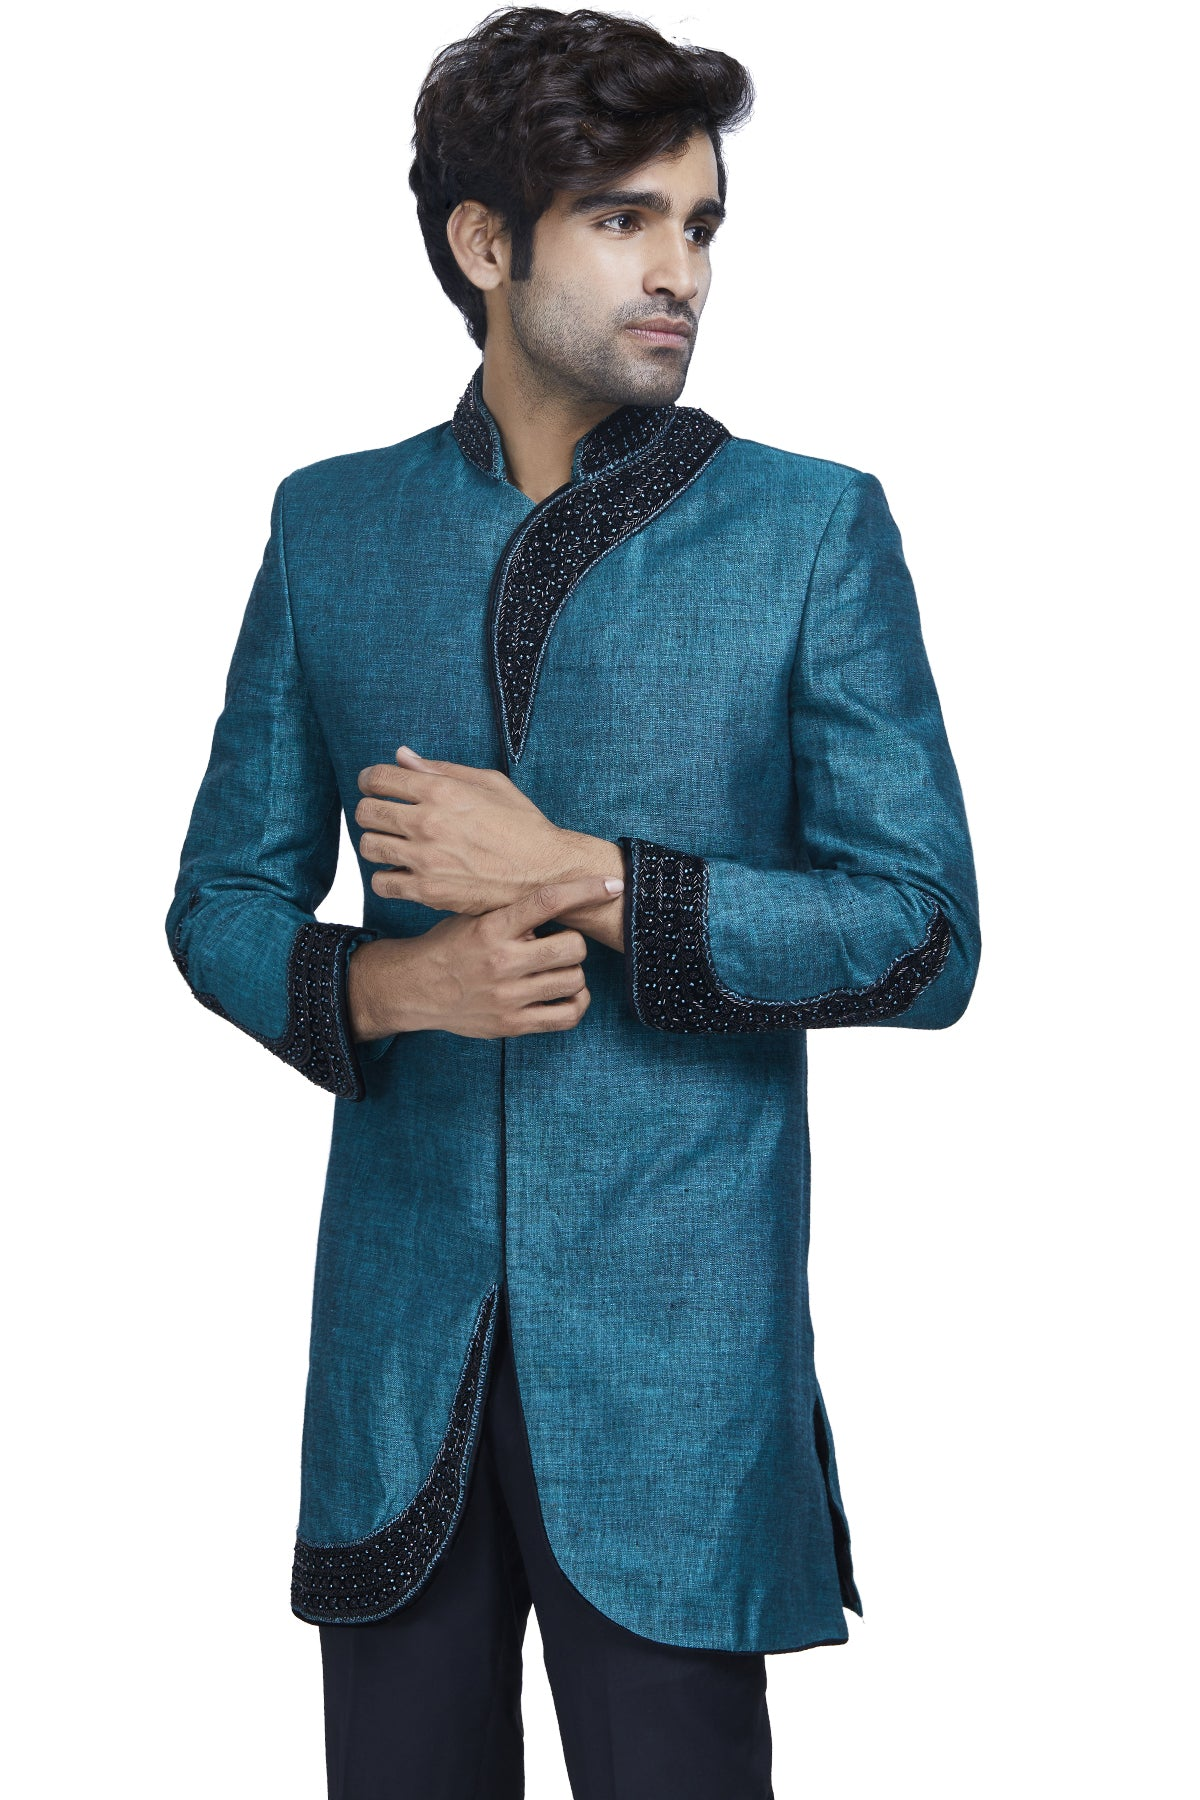 What are Indian festivities without a rush of royalty? Embrace regal hues with this peacock blue textured sherwani with asymmetrical black embroidery detailing on the neckline and cuffs.